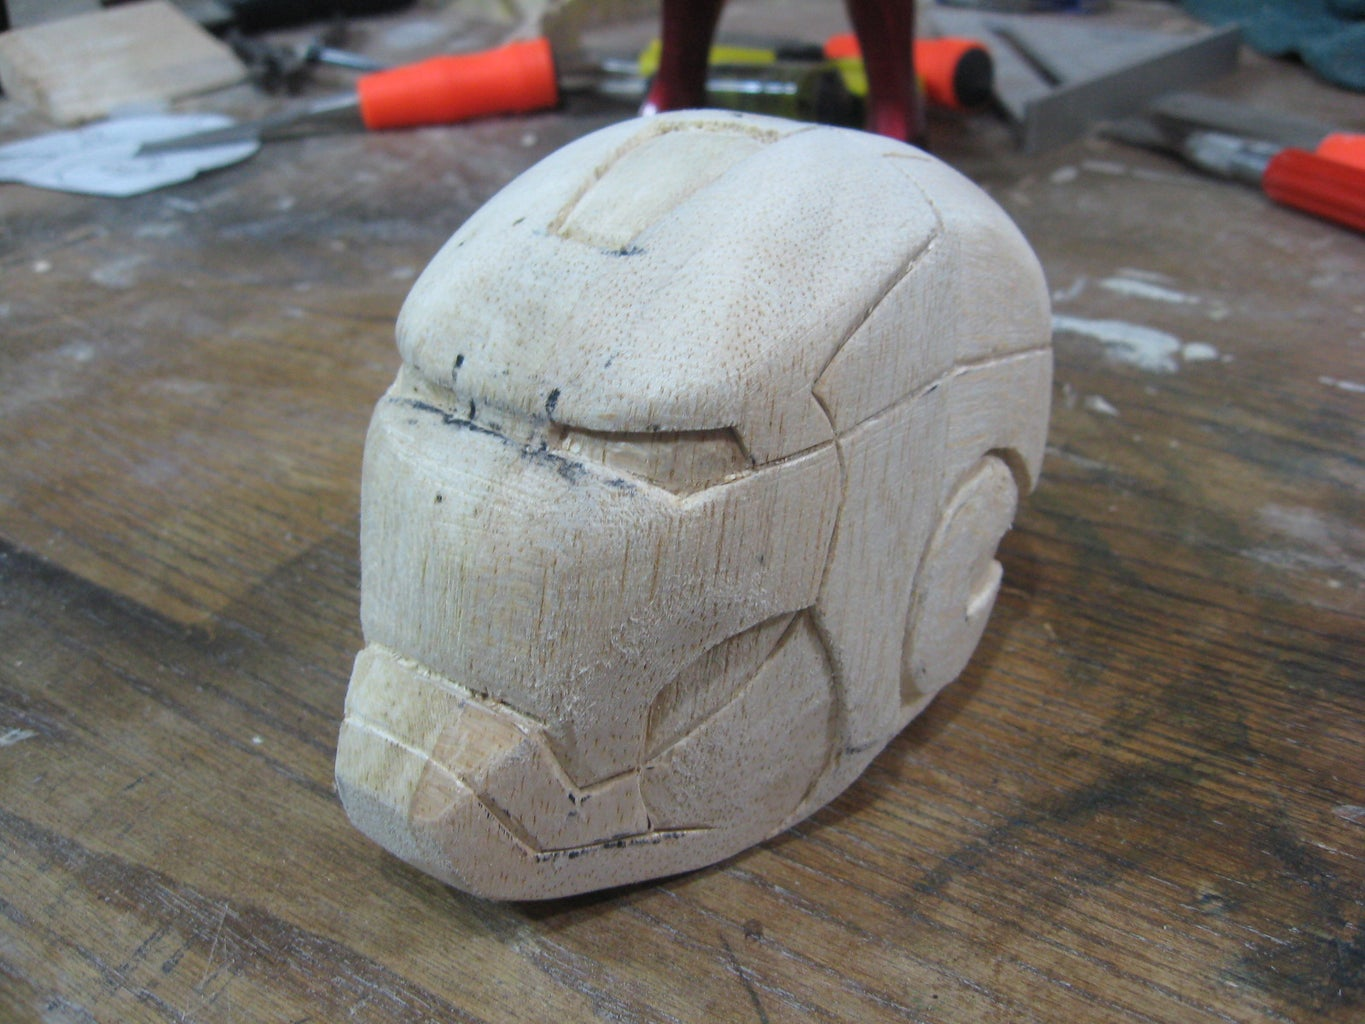 Finish Carving, Sand Smooth